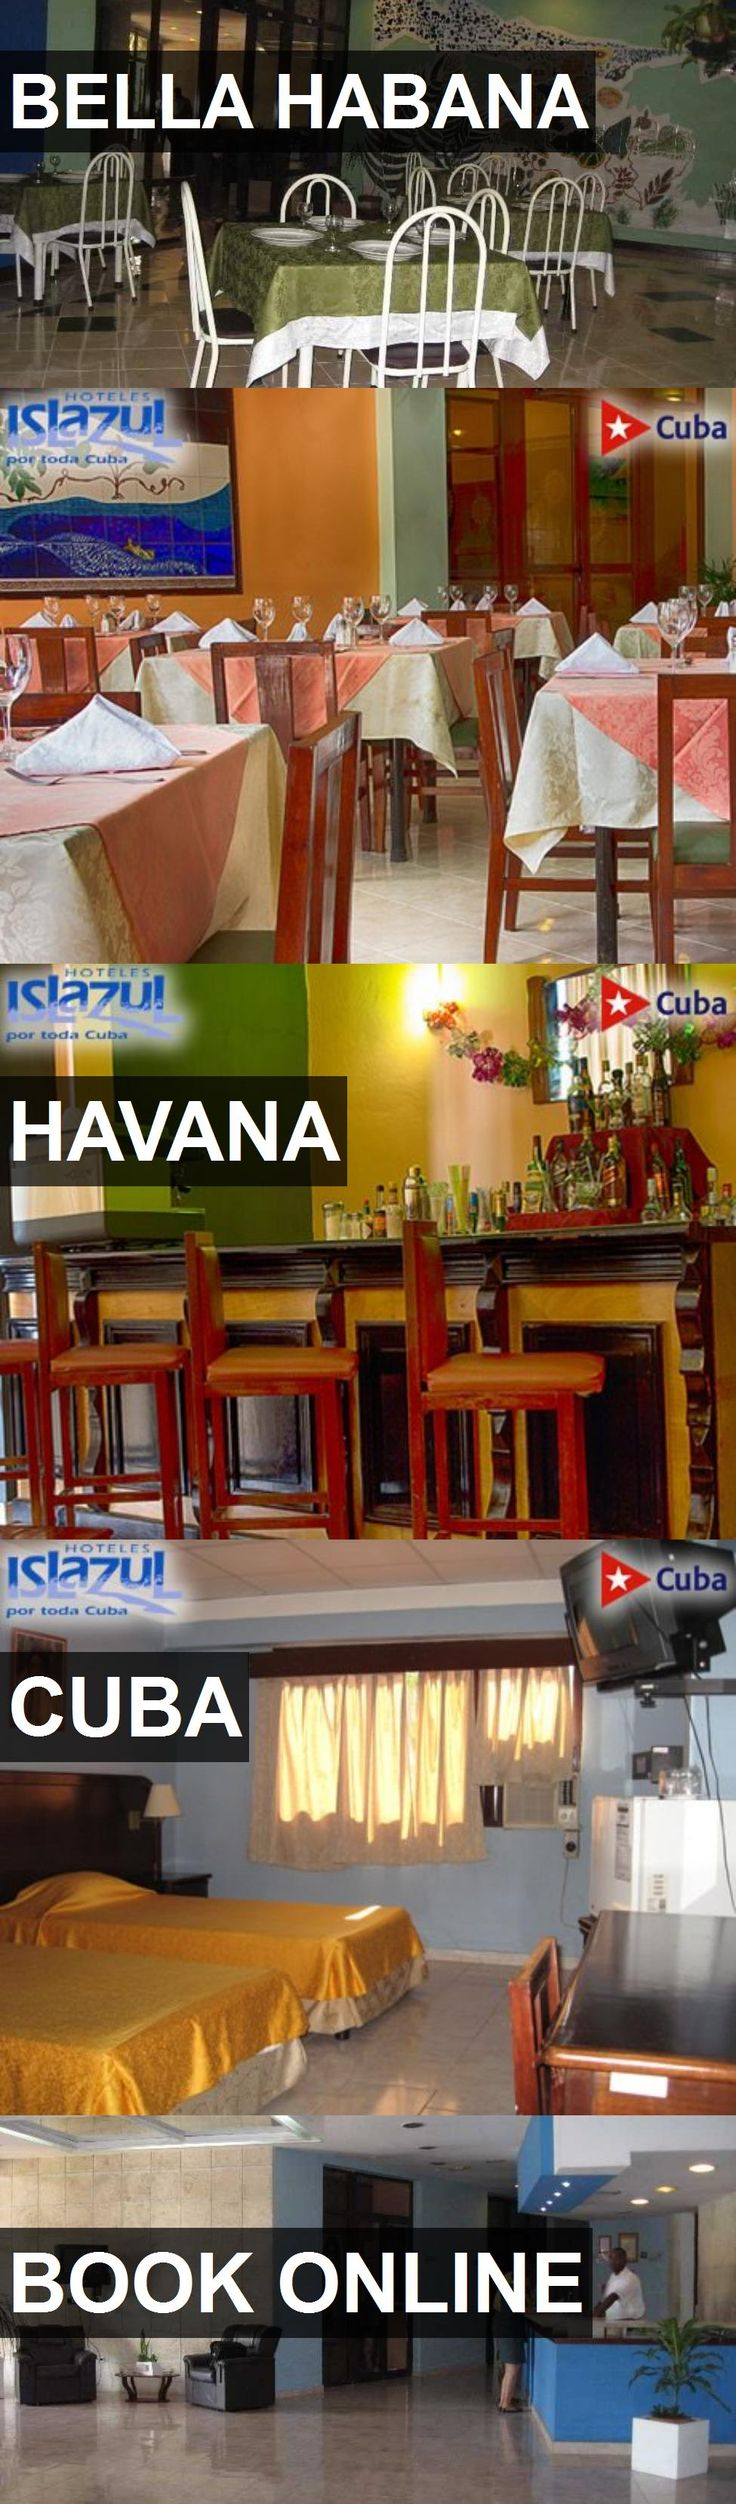 Hotel BELLA HABANA in Havana, Cuba. For more information, photos, reviews and best prices please follow the link. #Cuba #Havana #BELLAHABANA #hotel #travel #vacation